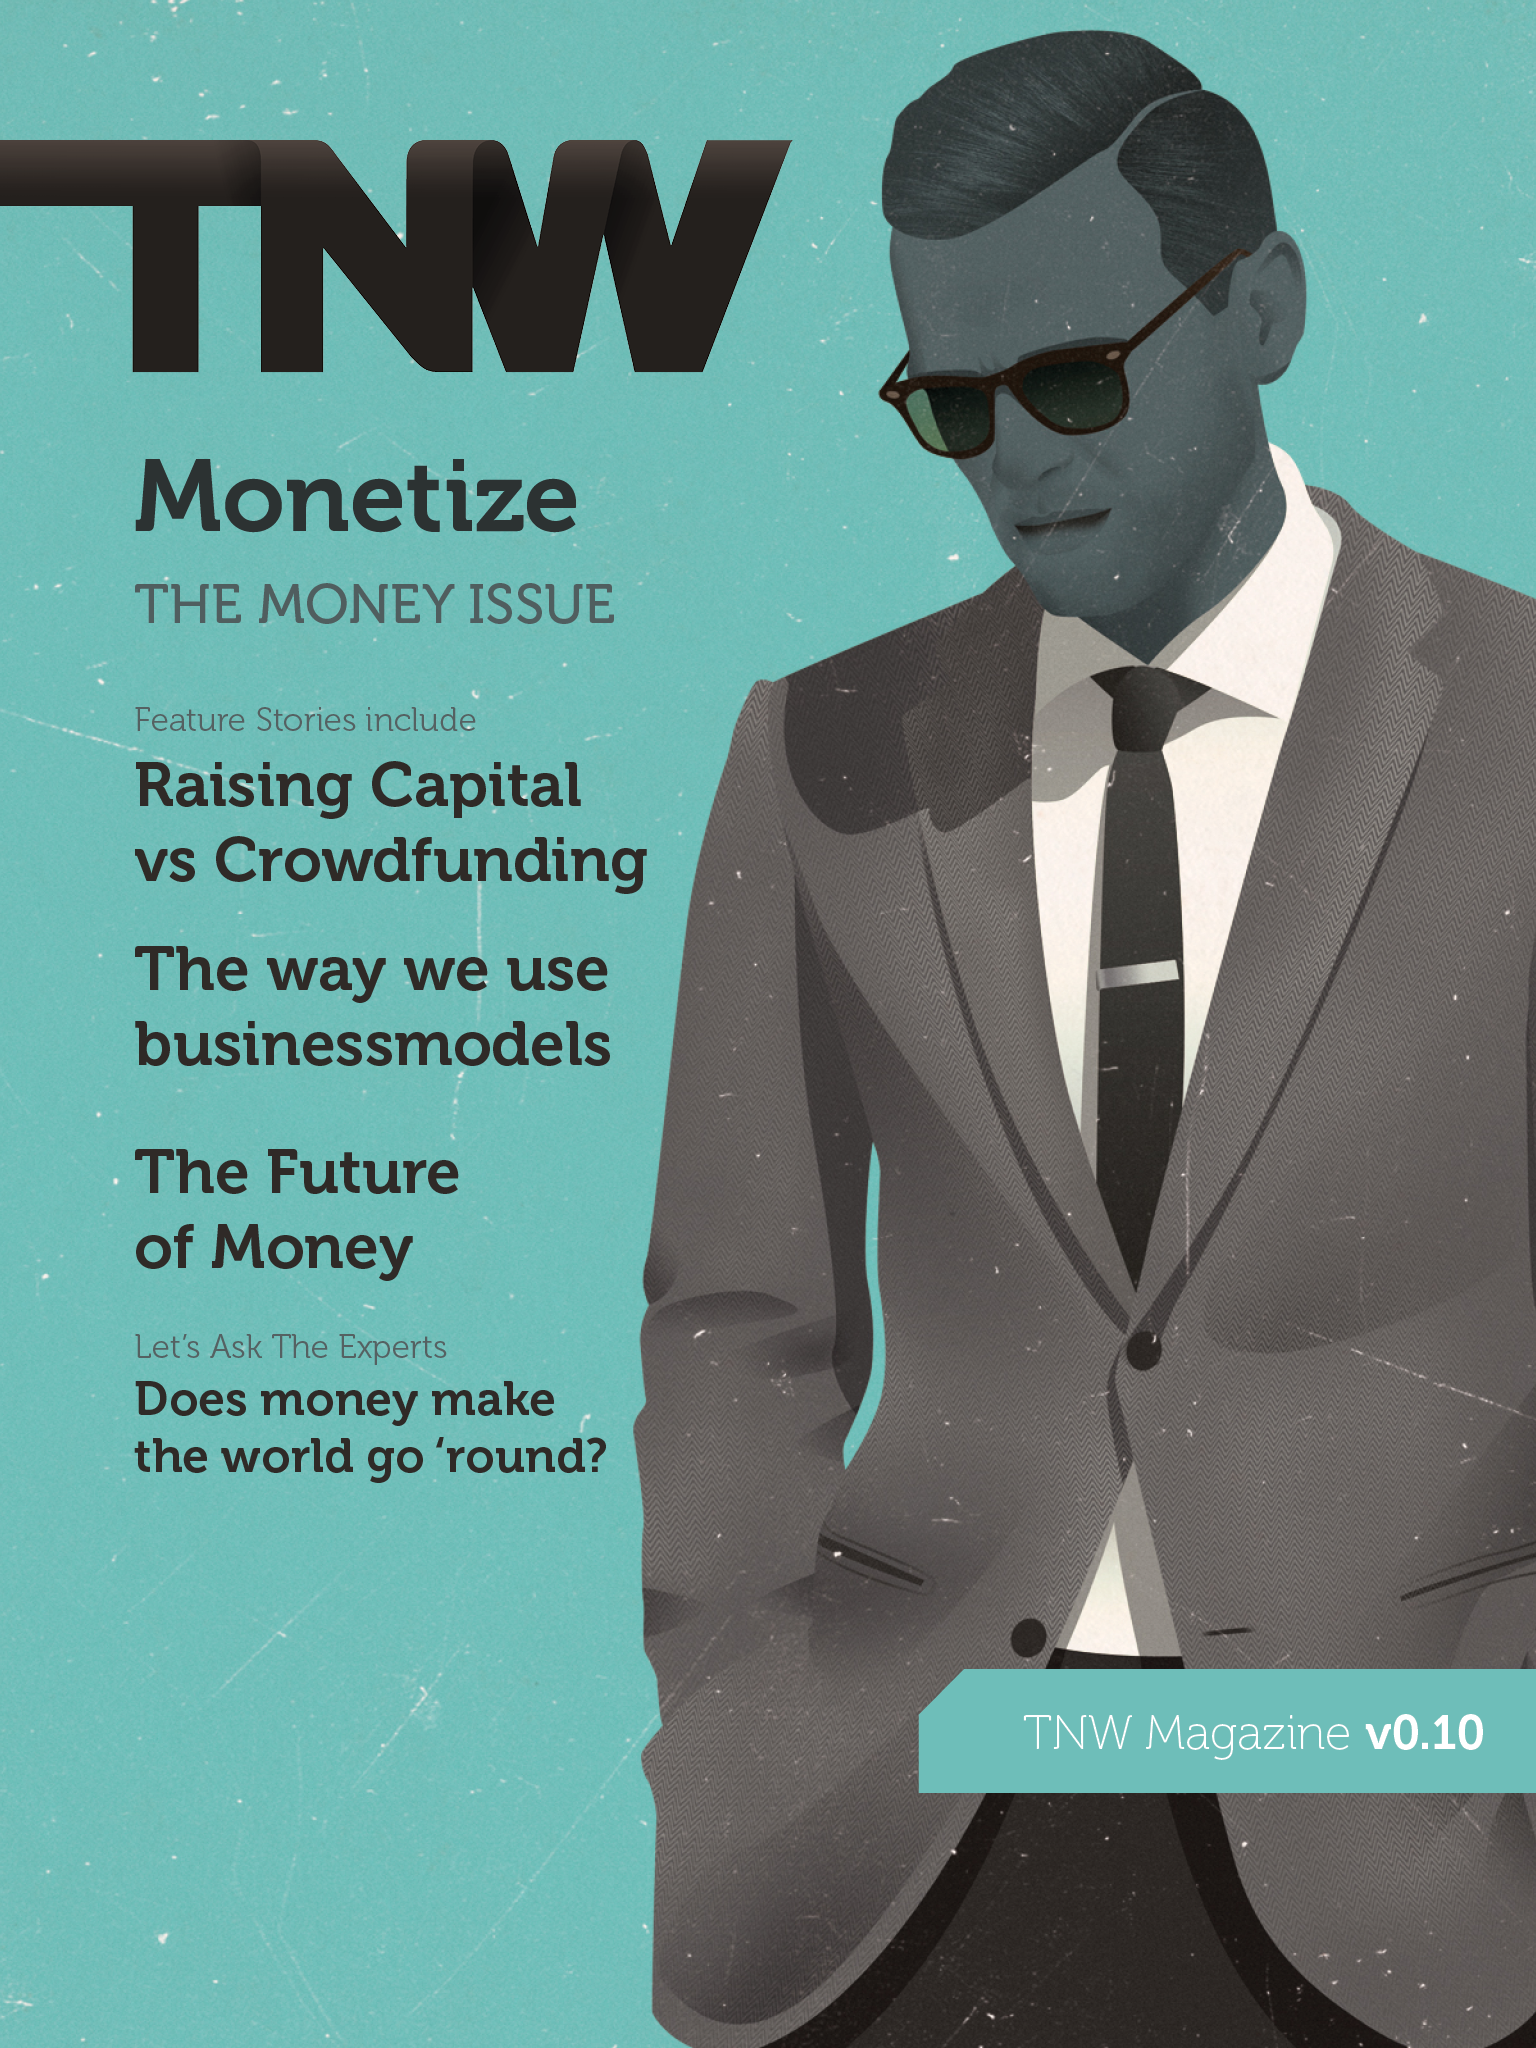 newsstand image Download TNW Magazine issue v0.10: MONETIZE